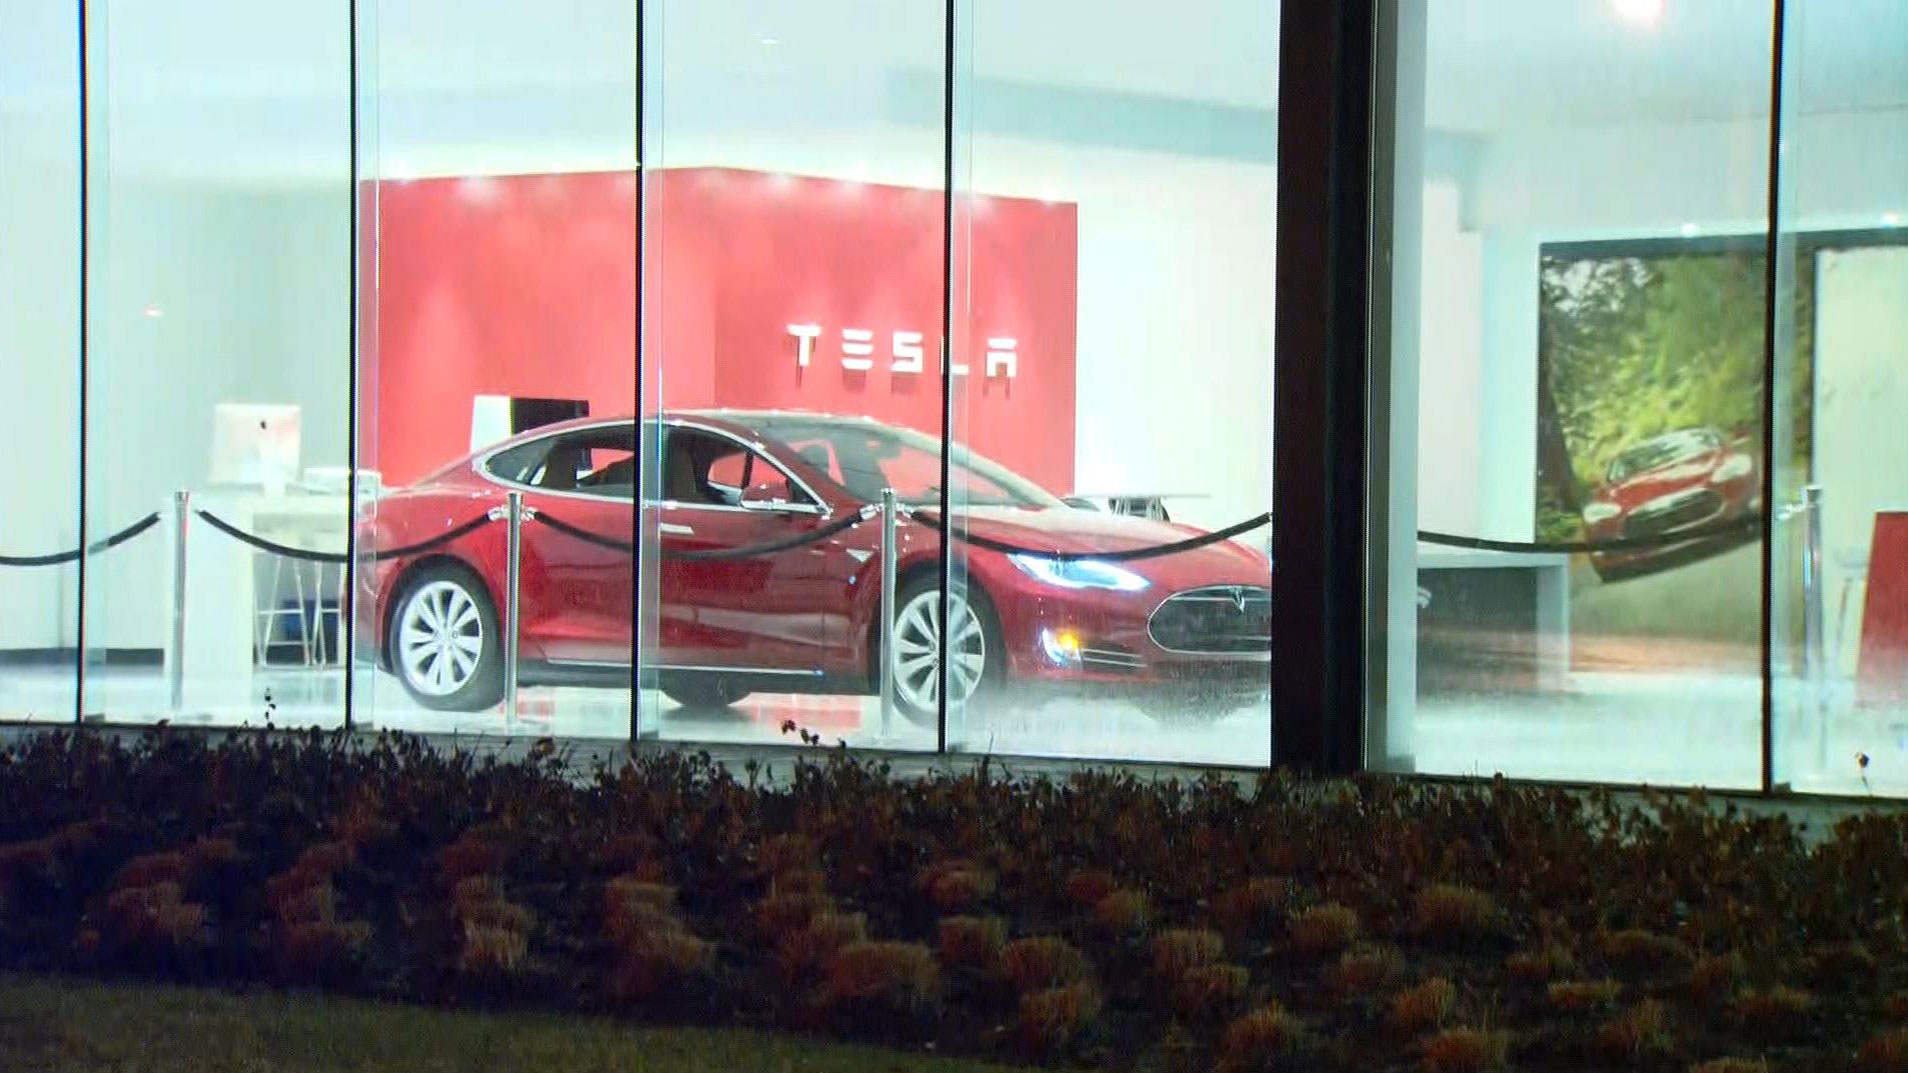 The Model 3 sits in the Tesla showroom at Lawrence Avenue East on March 31, 2016. CITYNEWS/Bertram Dandy.